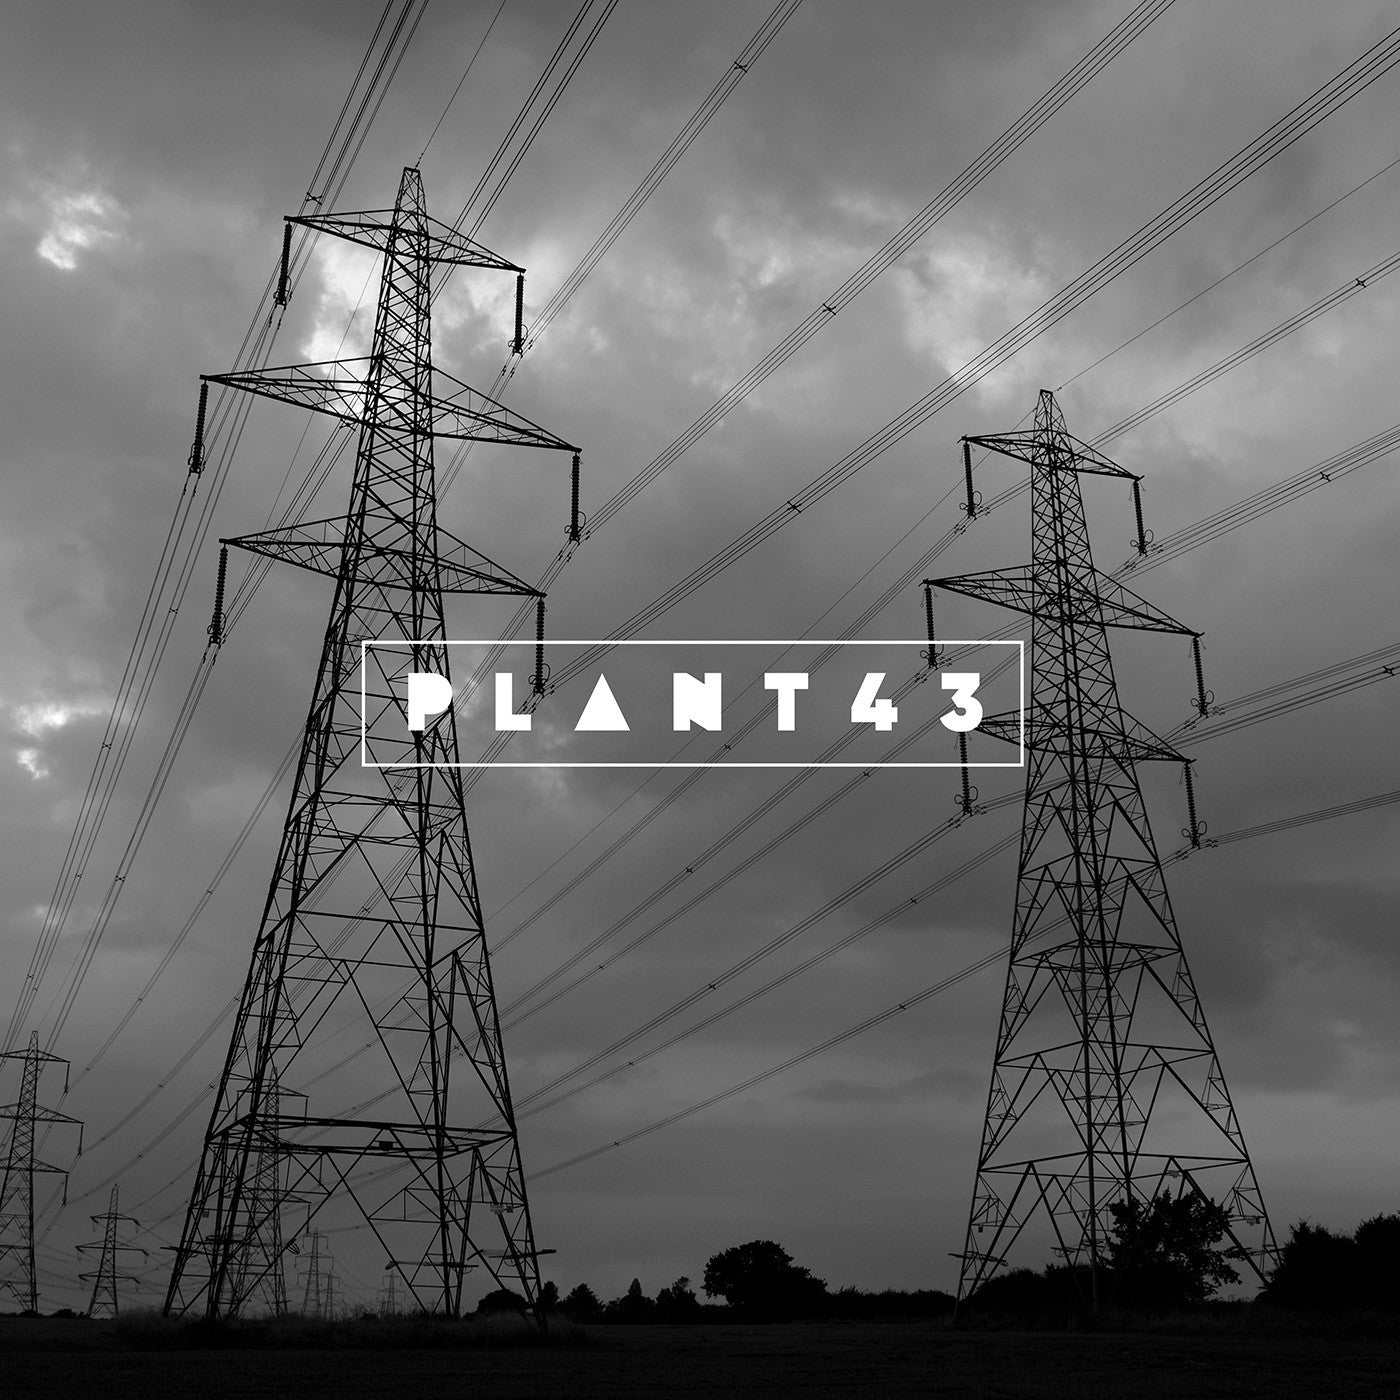 Plant43 - Grid Connection , Vinyl - Shipwrec, Unearthed Sounds